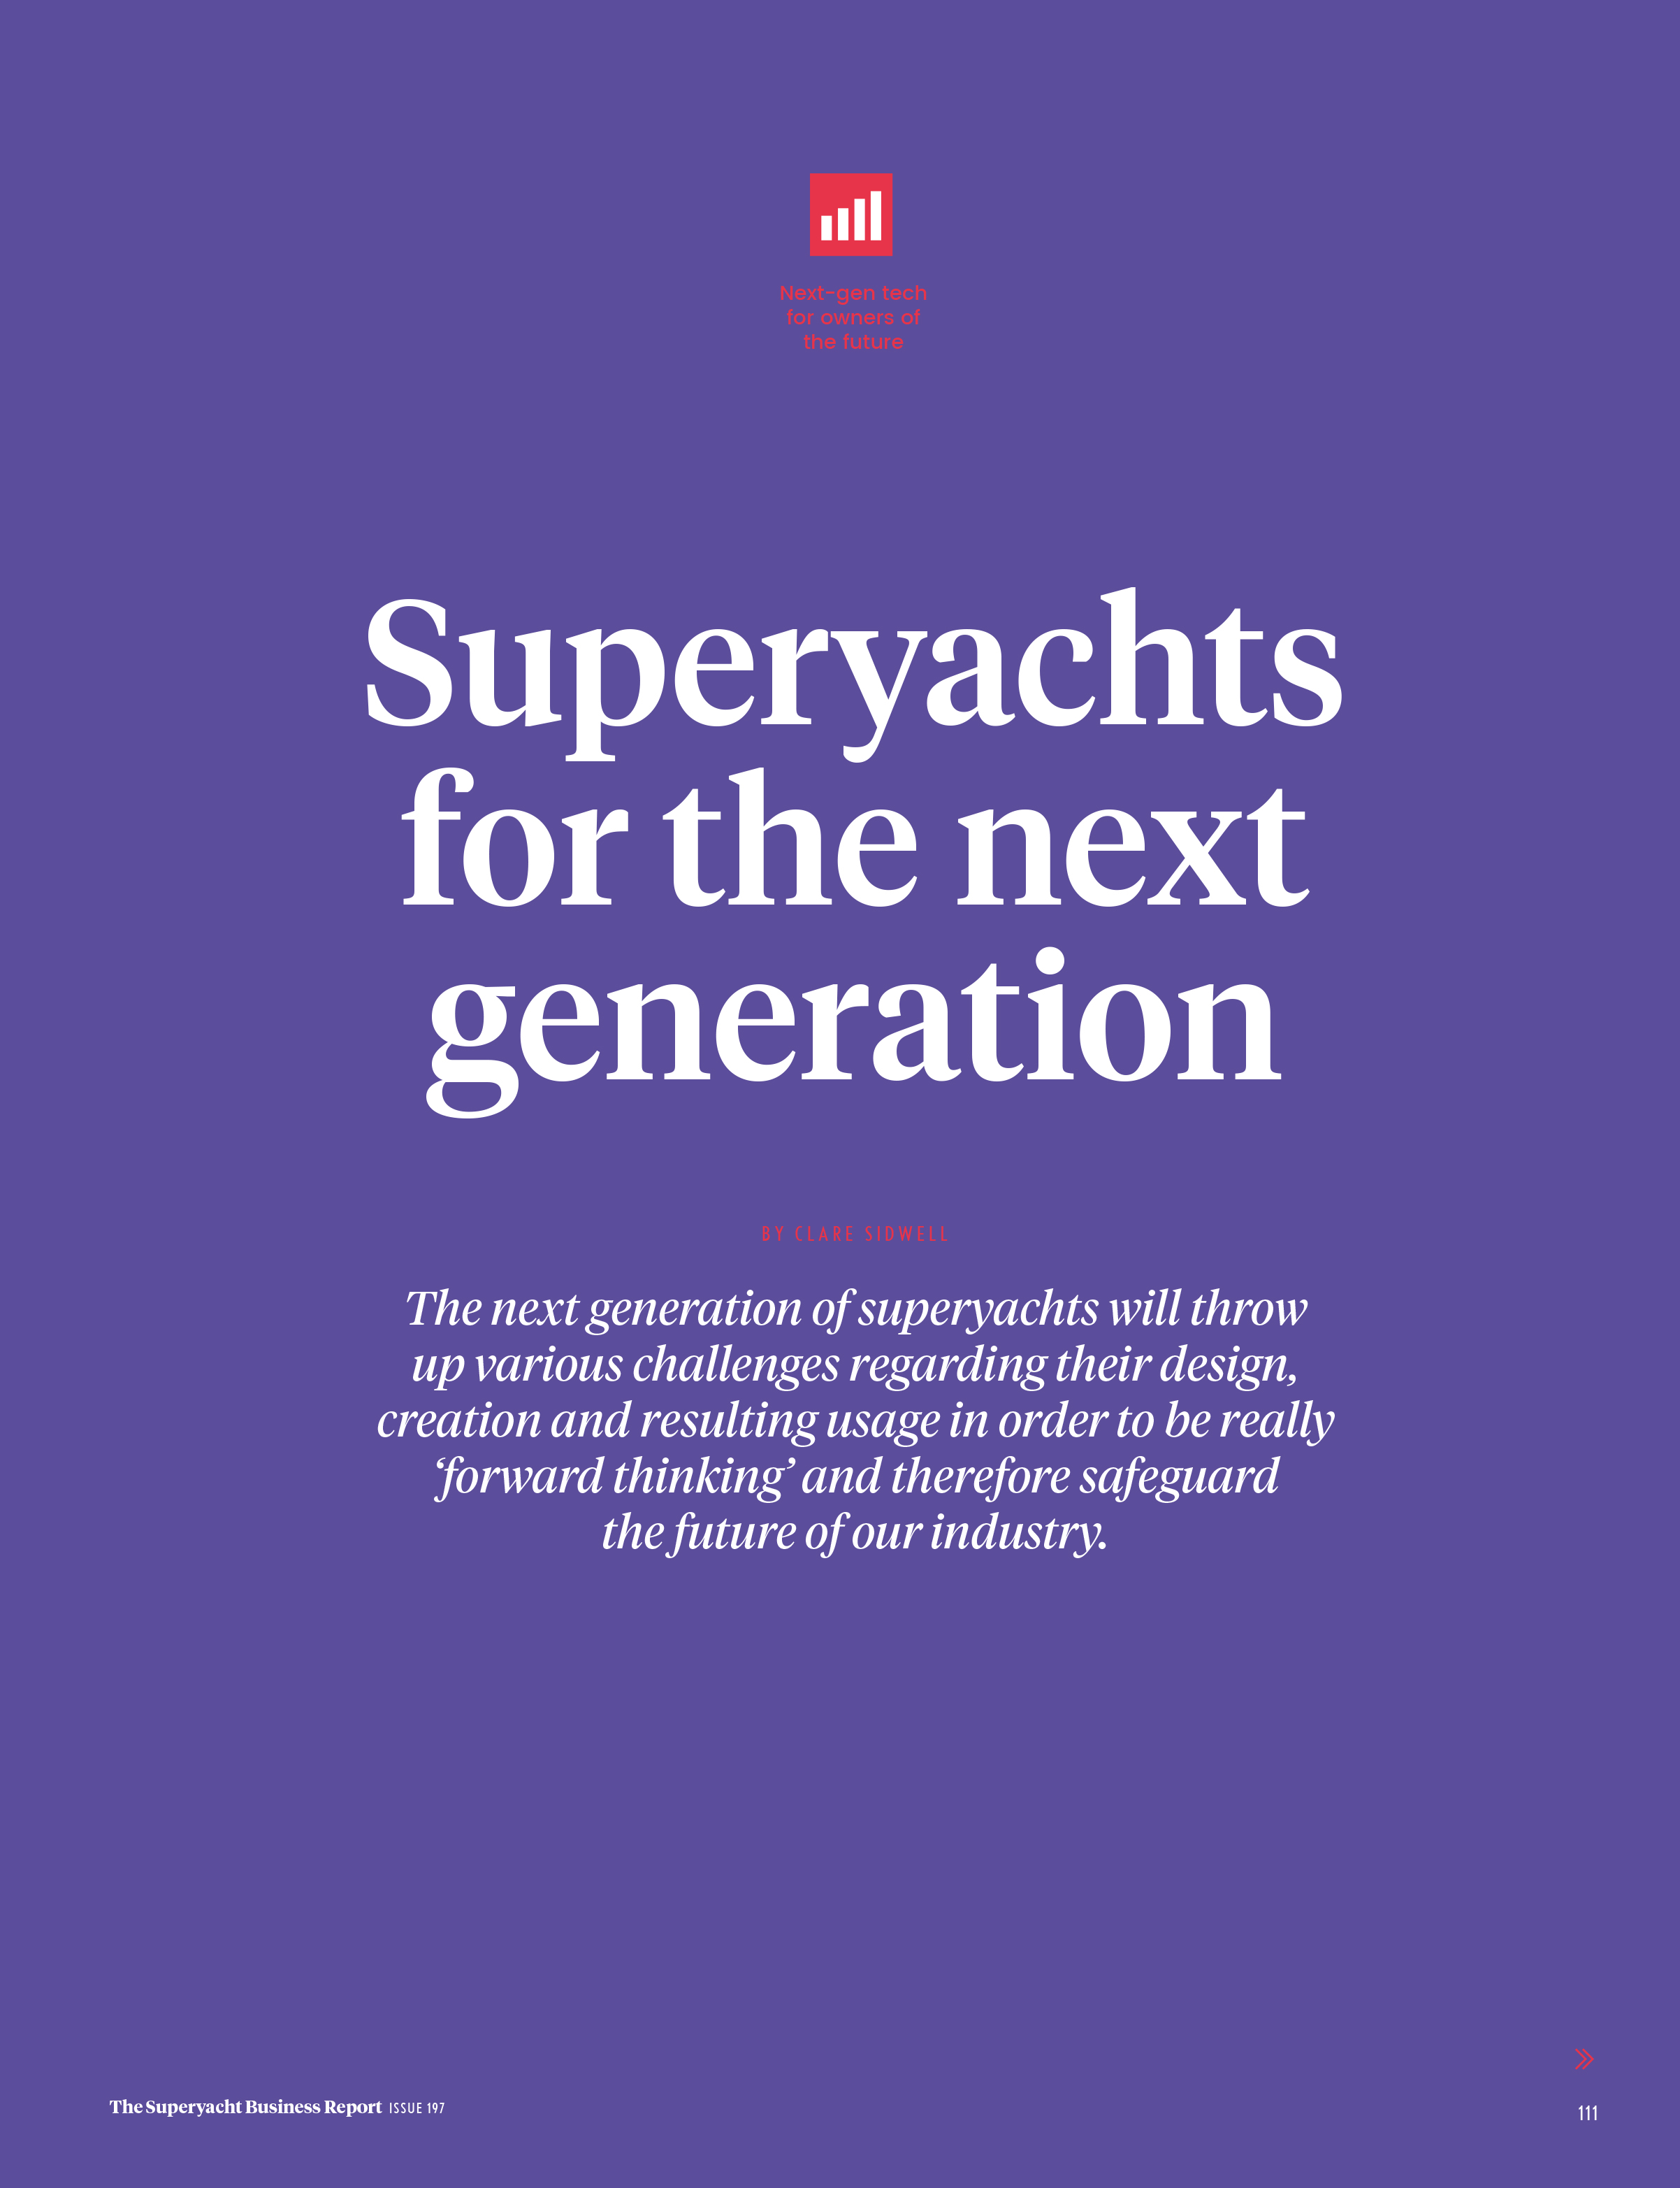 The Superyacht Business Report-001-111.jpg